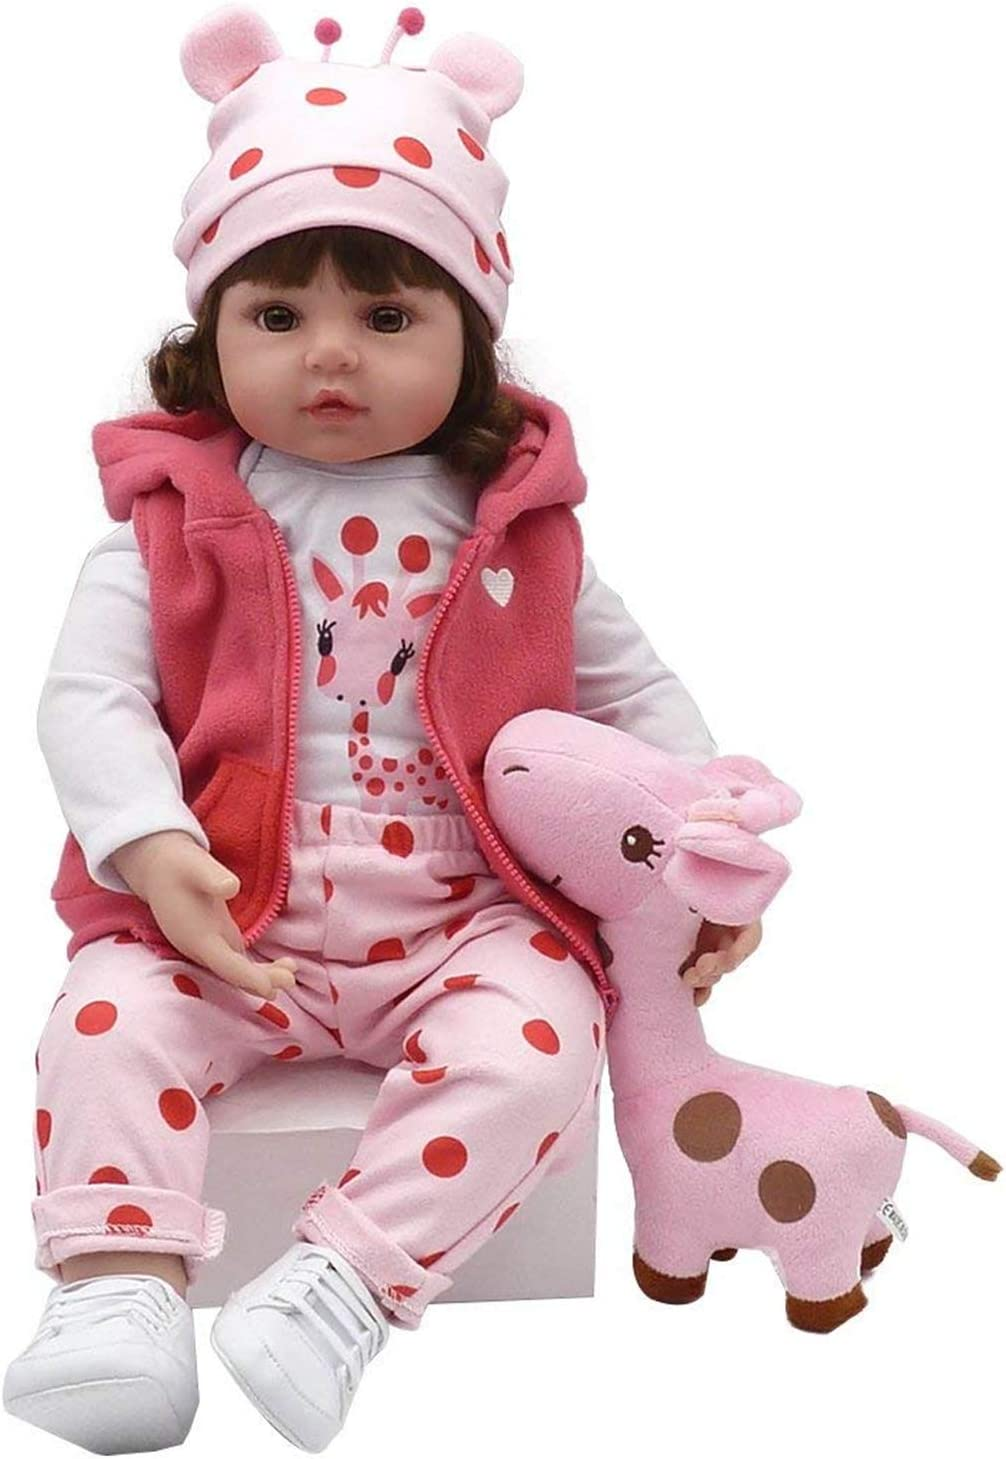 Giraffe Set Zero Pam Reborn Baby Dolls Accessories Ideal Outfit Set for 22 inch Baby Reborn Girl with Toys and Pacifier